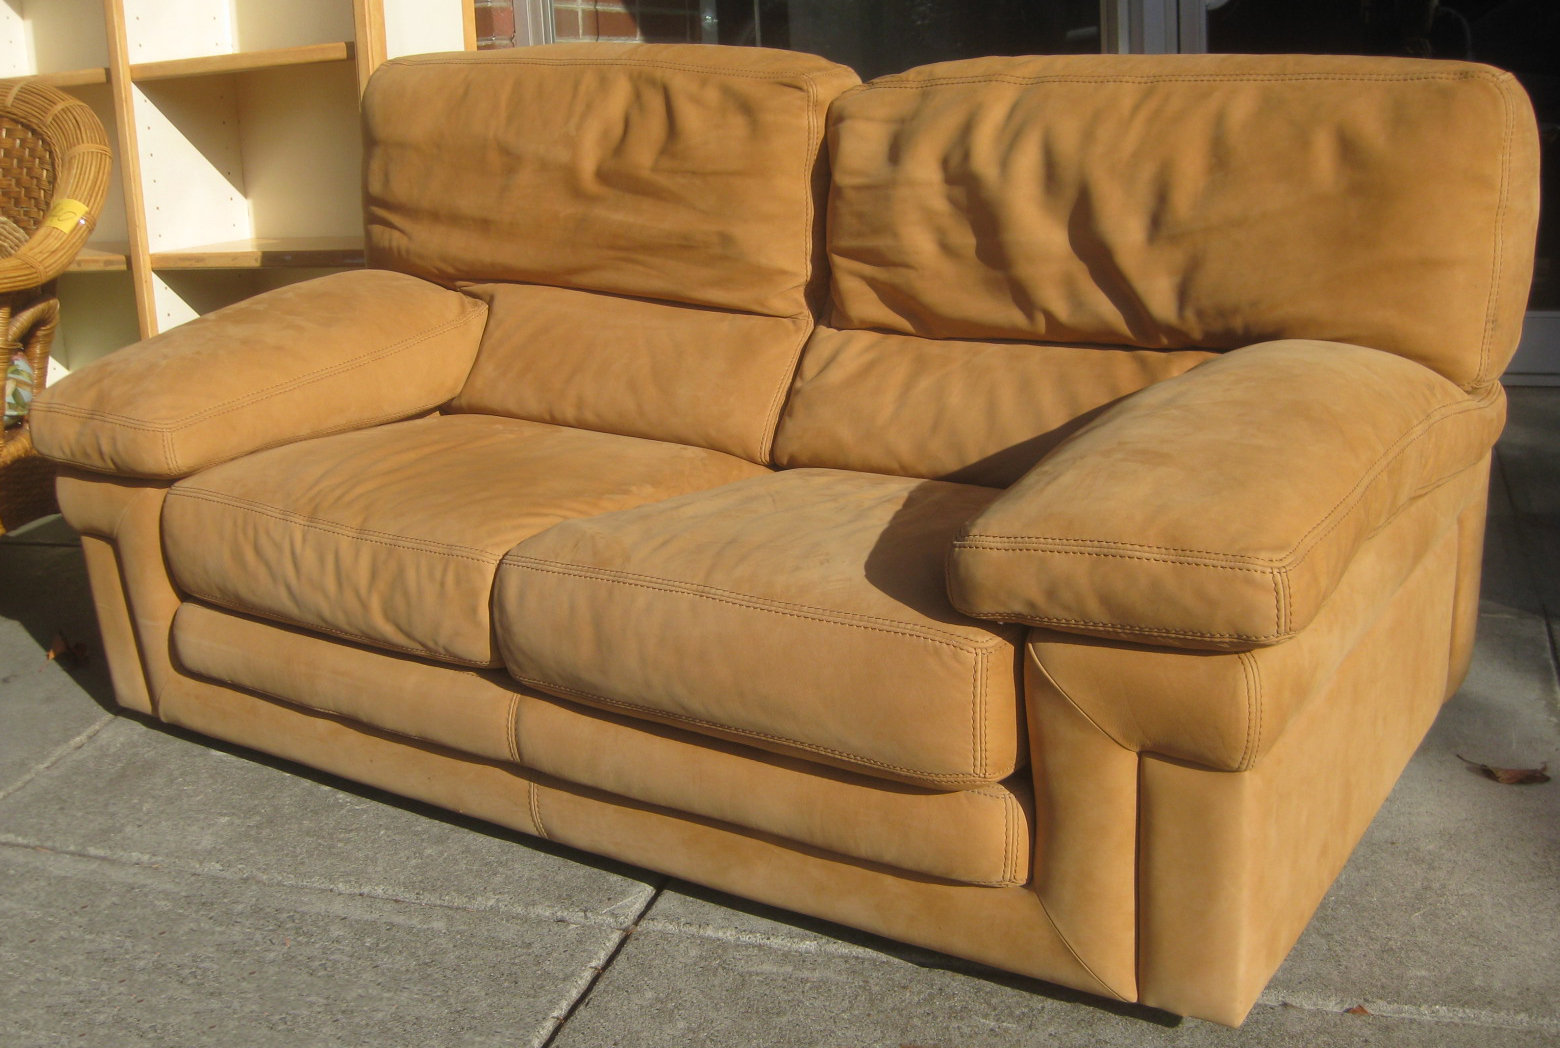 Leather And Suede Sofa Leather Sofa Beds Facts Designersofas4u Brown Leather And Suede Sofa